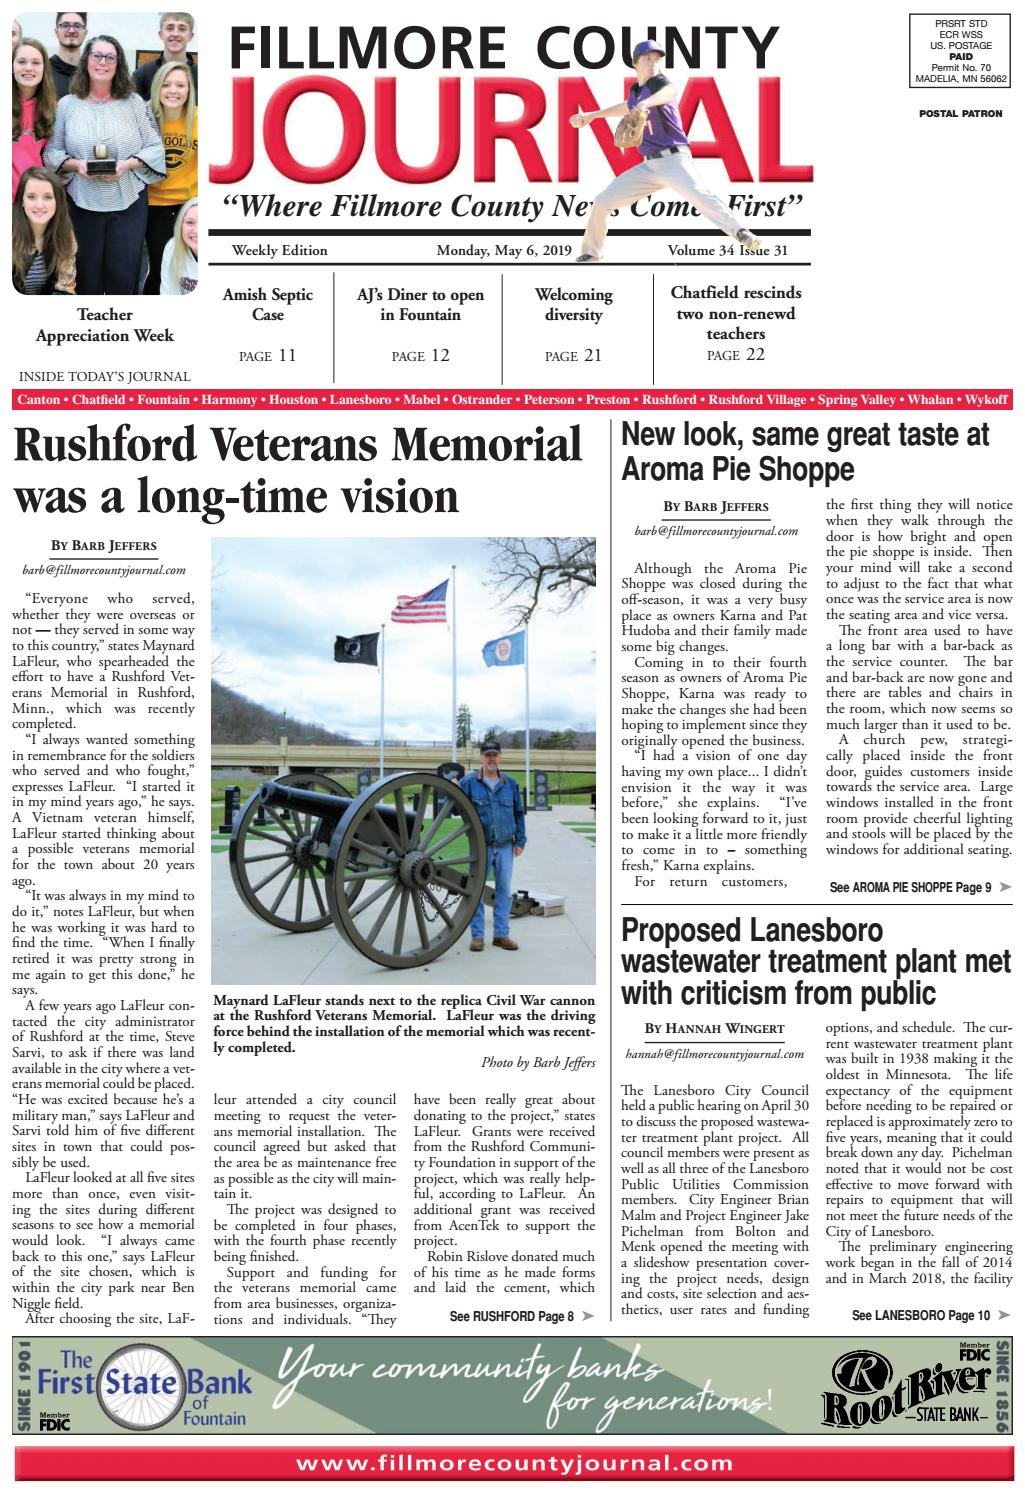 Fillmore County Journal - 5.6.19 by Jason Sethre - issuu on